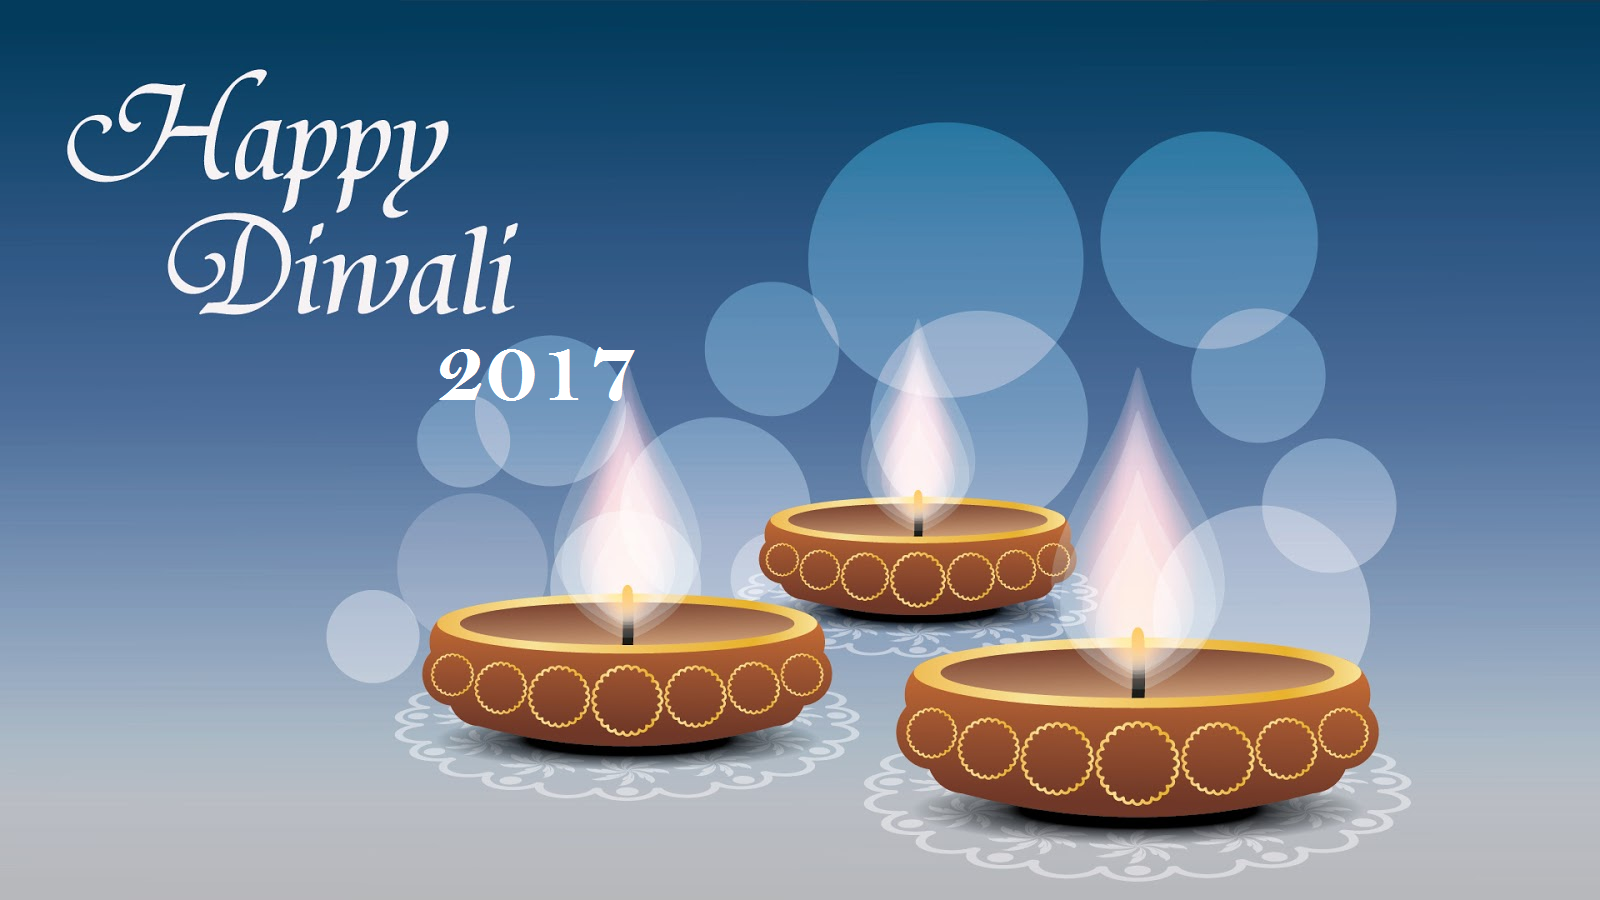 Free download happy diwali greetings 2017 diwali greeting cards turn back to their places with equally precious gifts and pious deepawali greetings get animated diwali greetings and share diwali greetings in hindi m4hsunfo